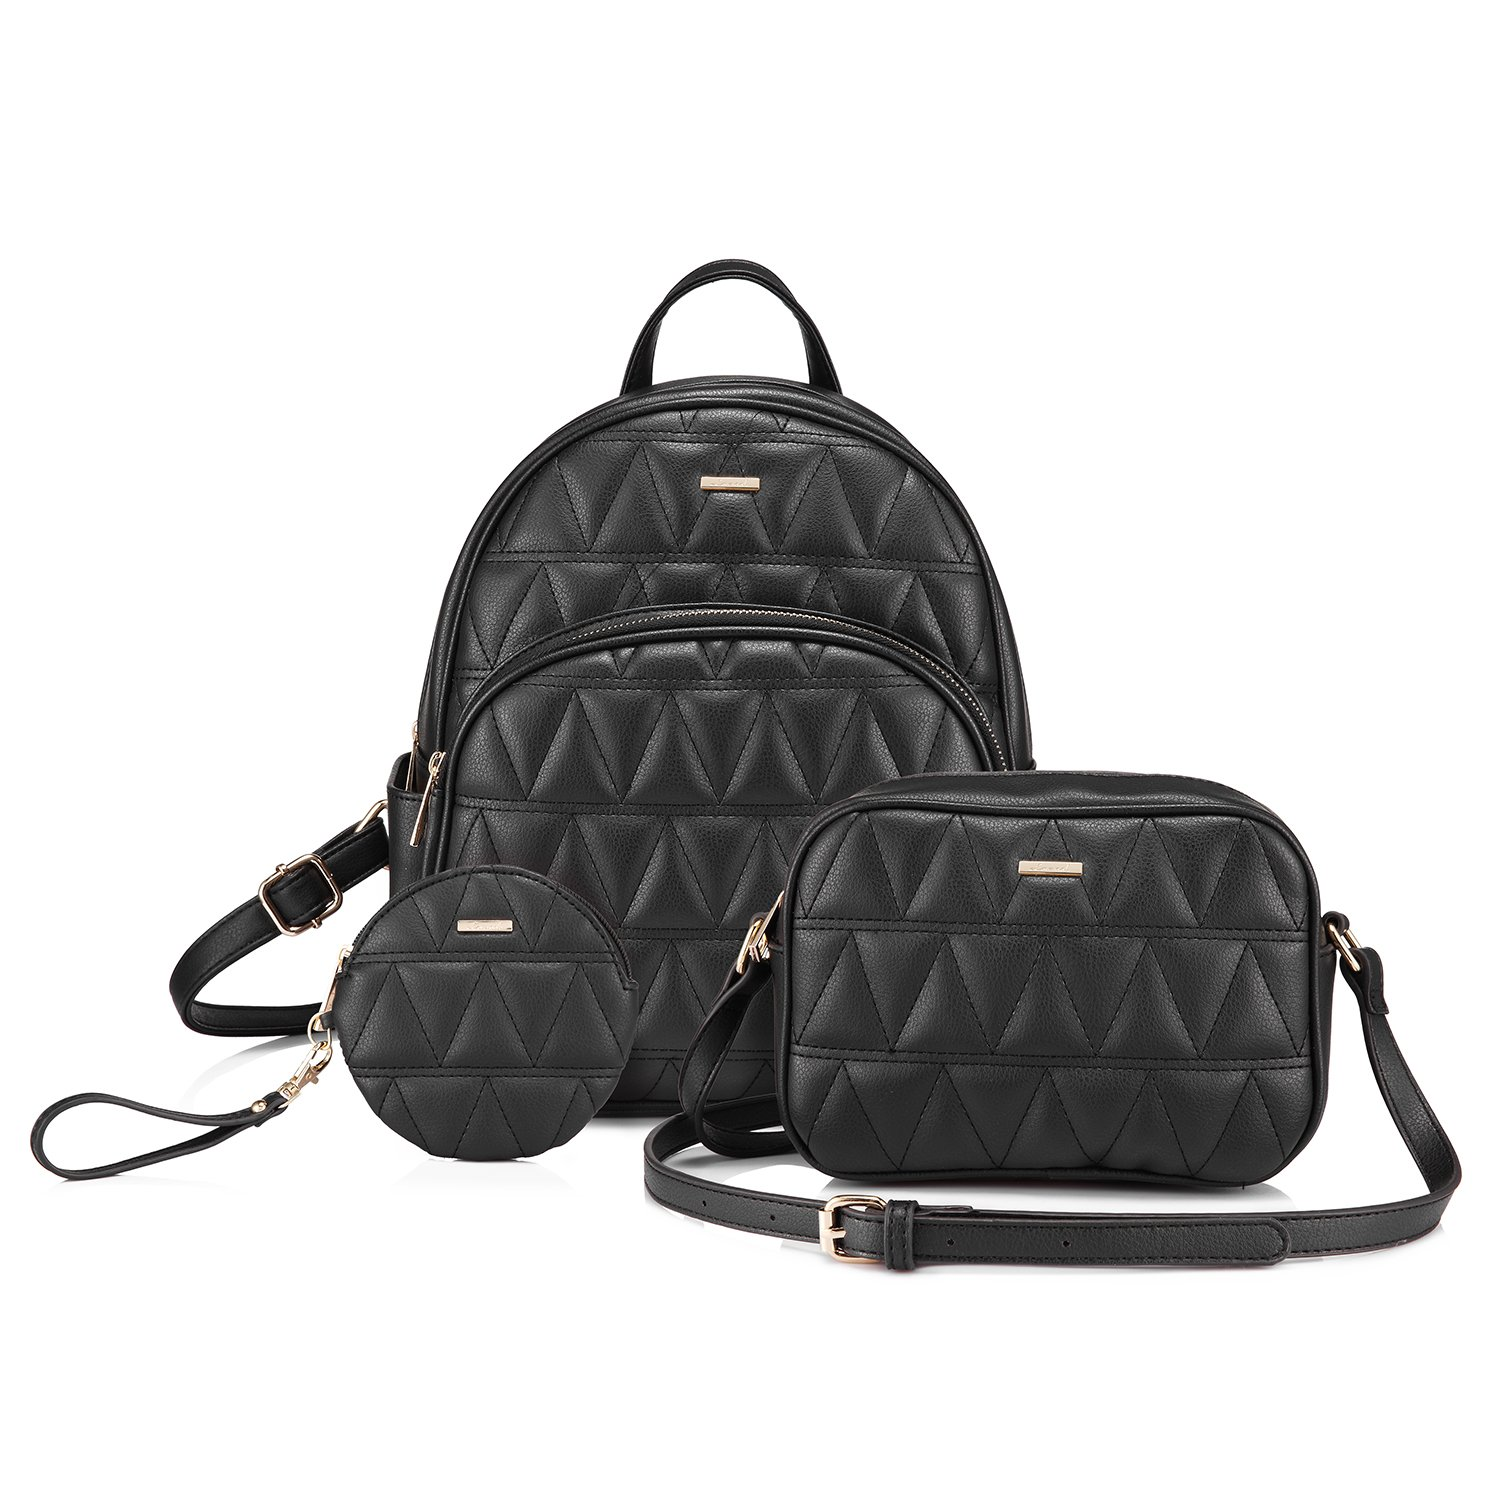 Backpack Purse Quilted Casual Backpacks Handbags for Women Shoulder Bag Coin bag 3 Pieces Set Black